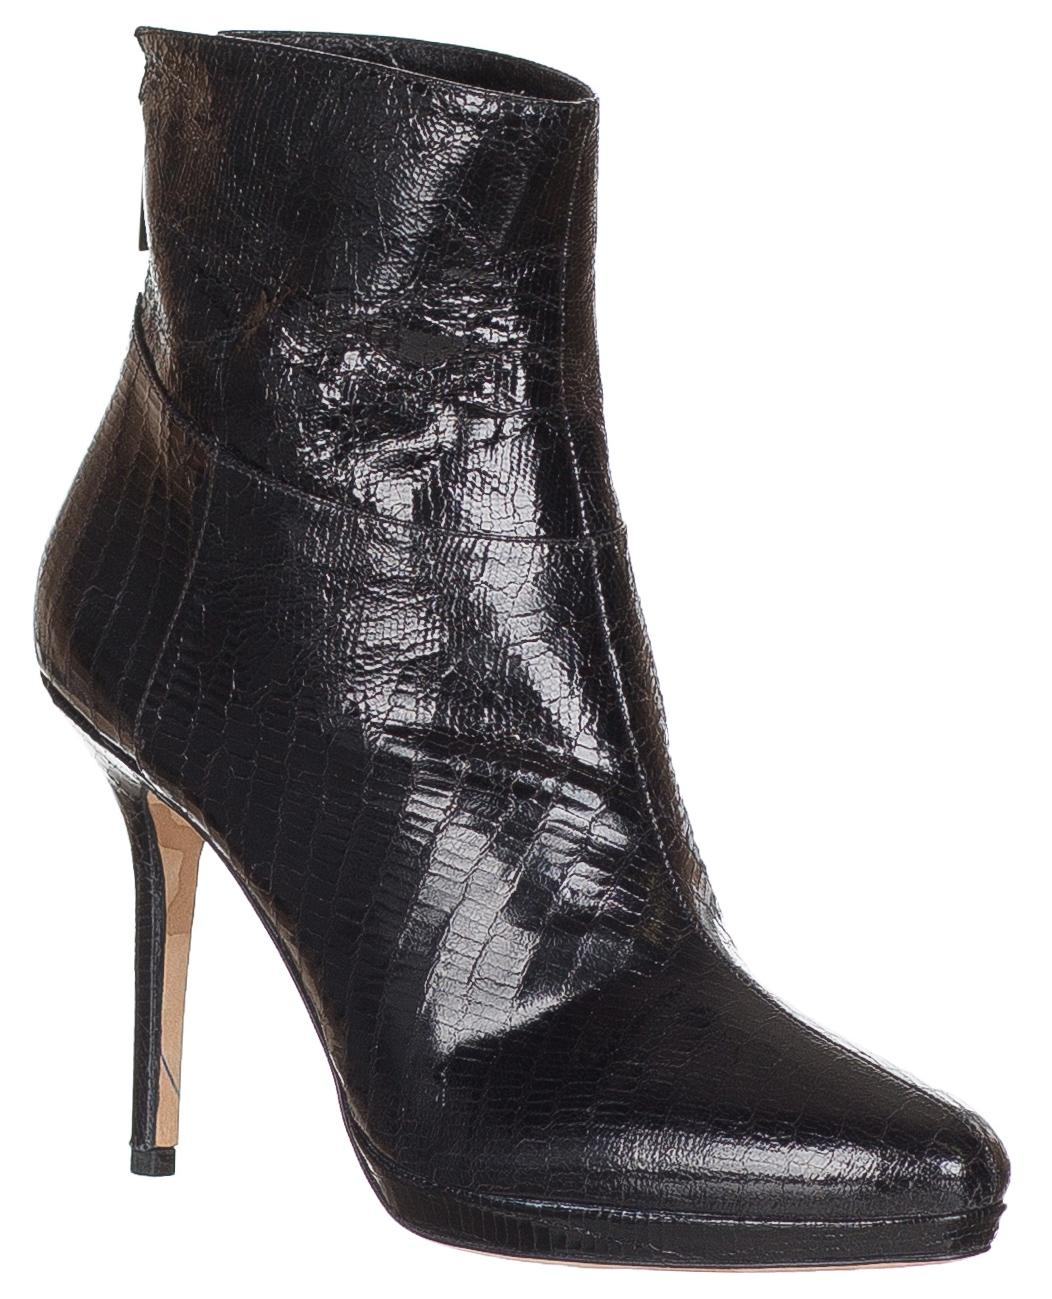 Jimmy Choo Black Lizard Embossed Leather Ankle Boots/Booties Size US 9 Regular (M, B)